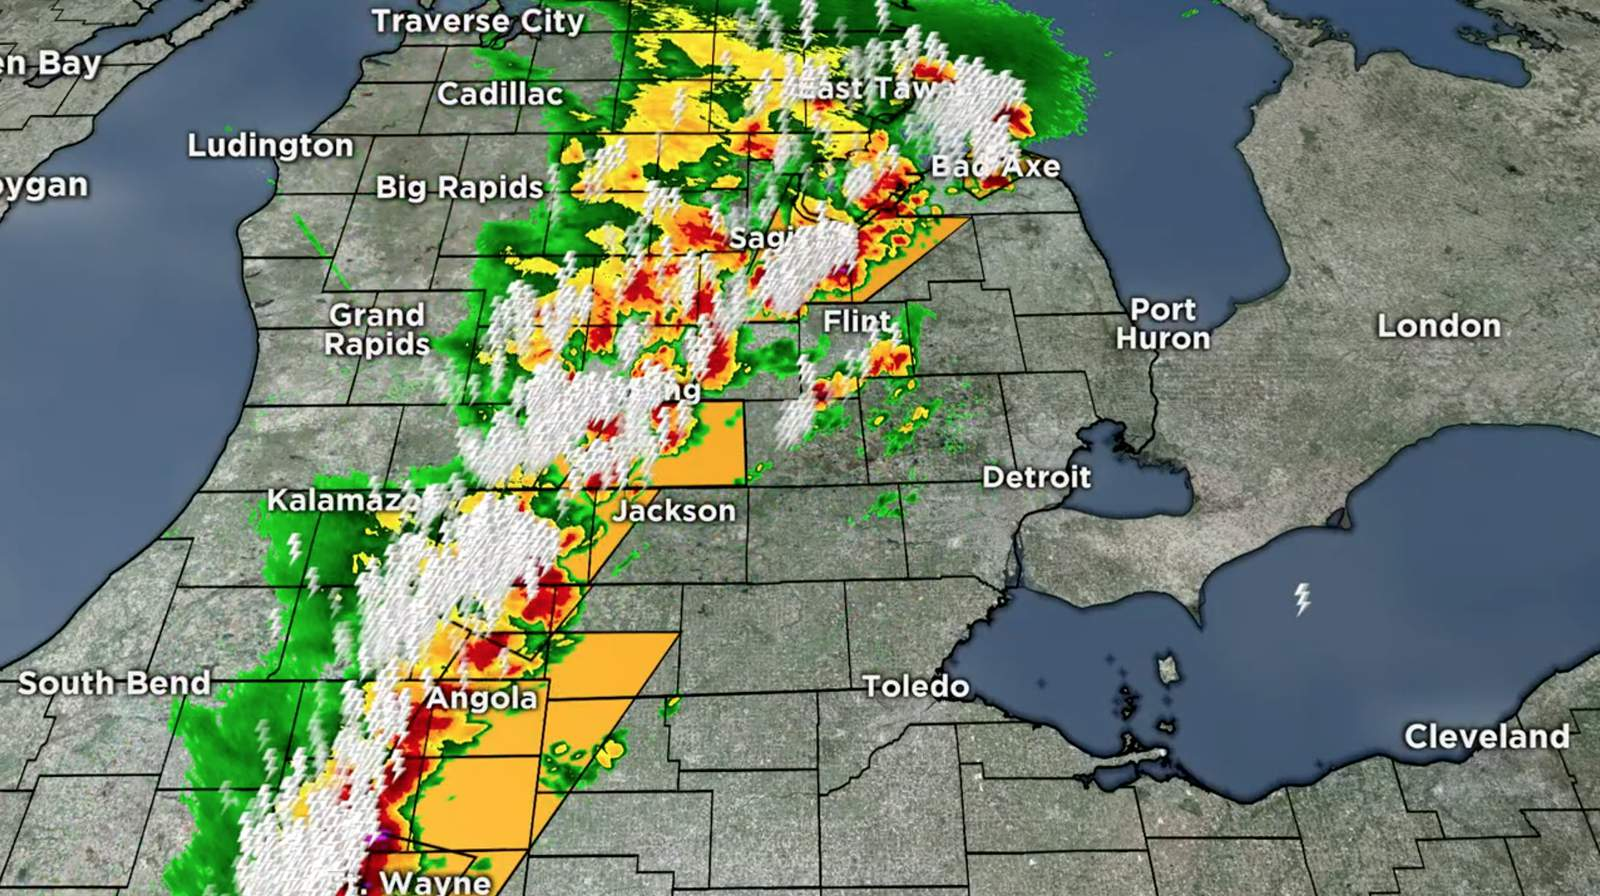 Weather Radar Map Southeast Us Here are the active weather warnings, watches for each Southeast